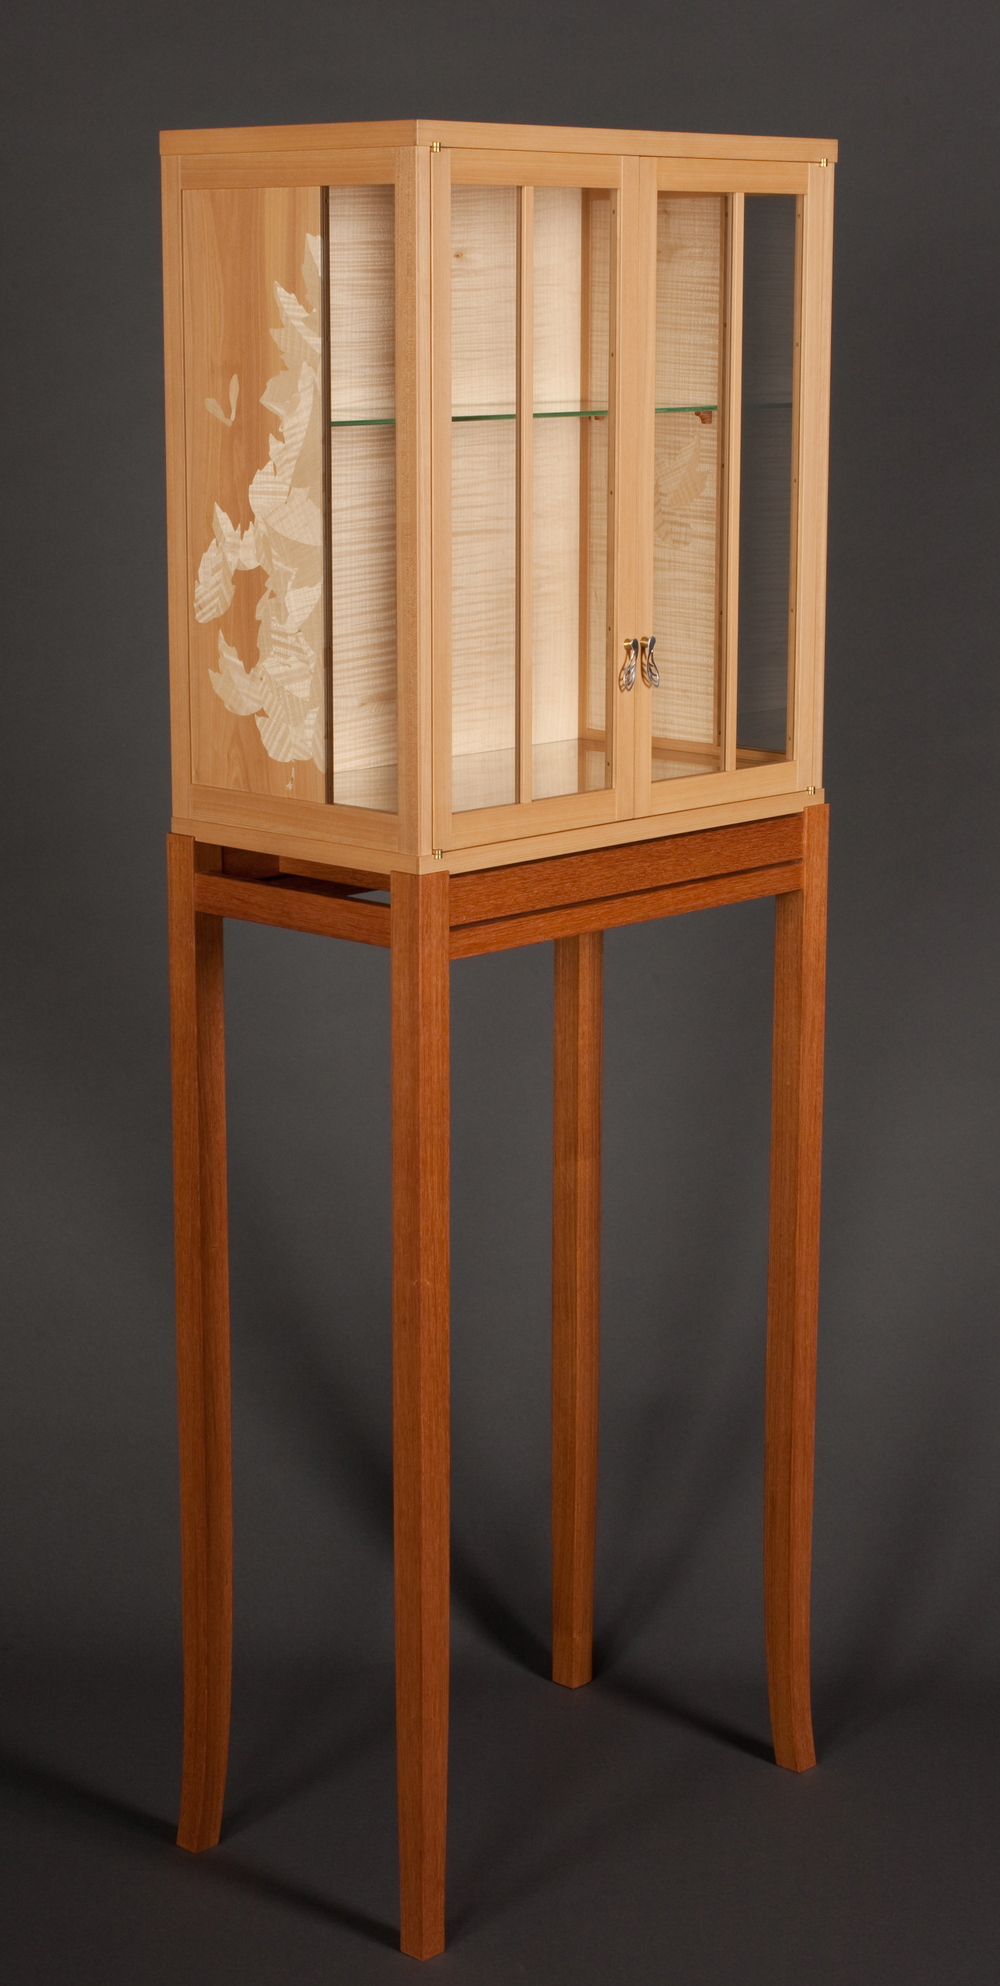 Sycamore Leaf Cabinet (2010)